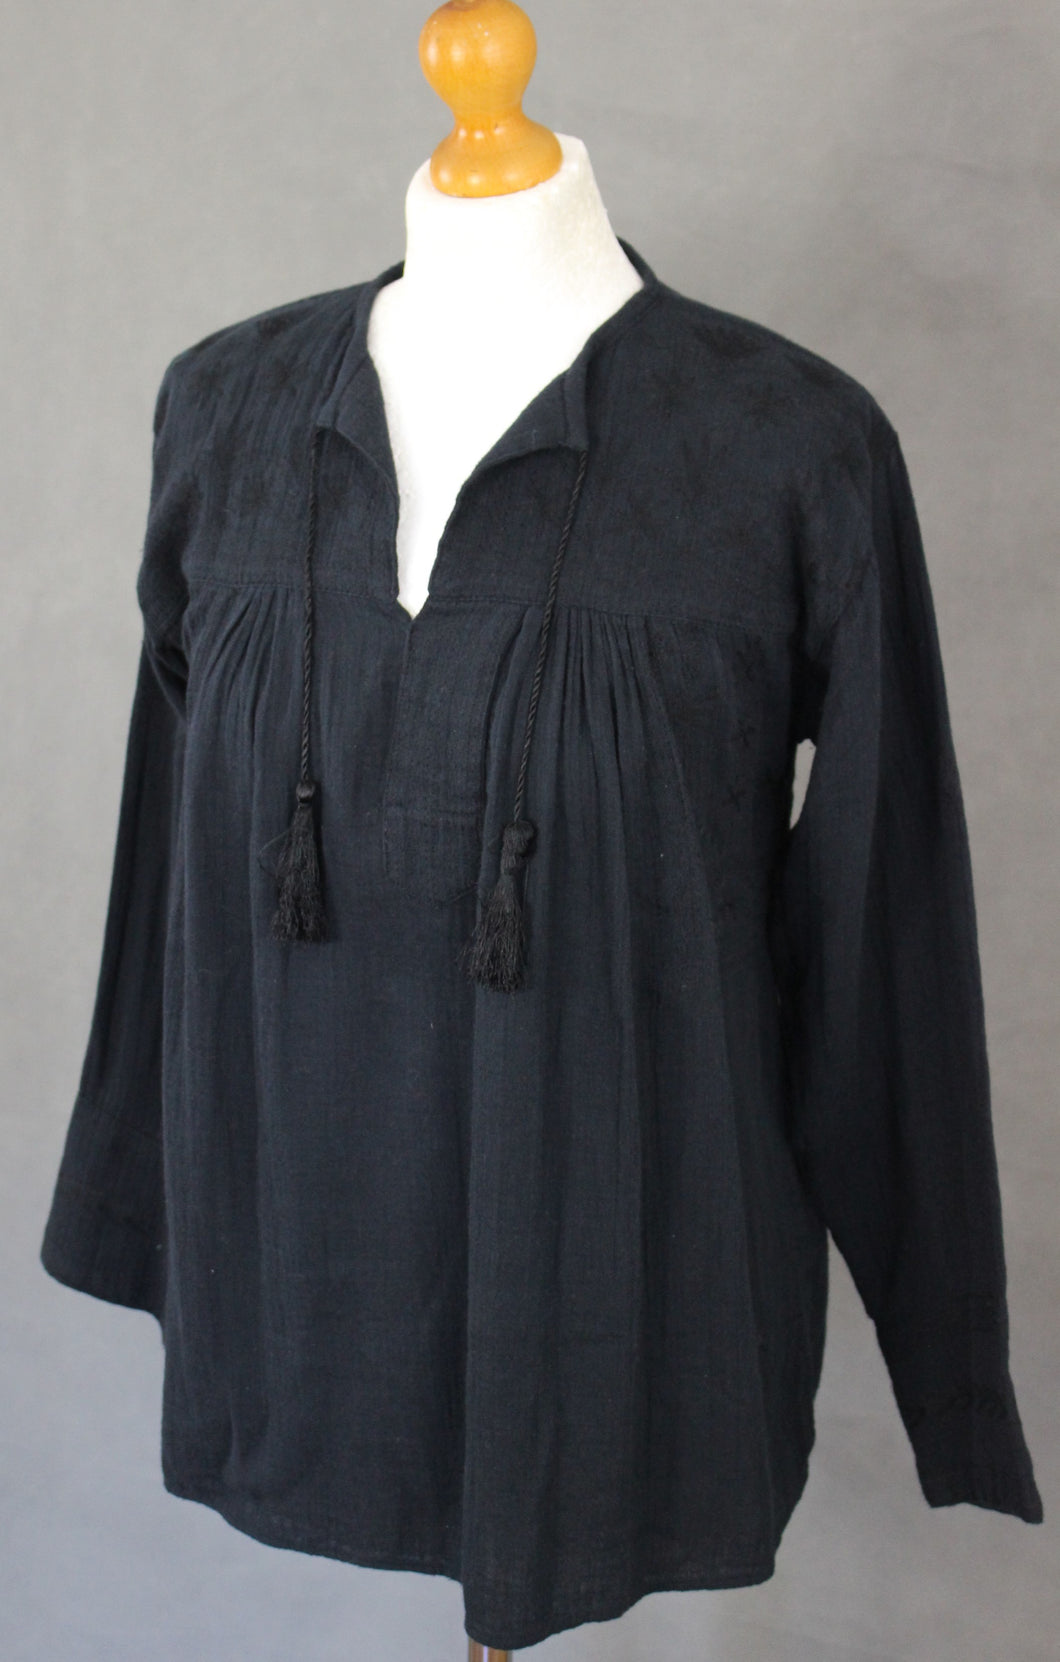 ISABEL MARANT ÉTOILE Ladies Embroidered Black Tassle Neck Tie TOP Size FR 36 - UK 8